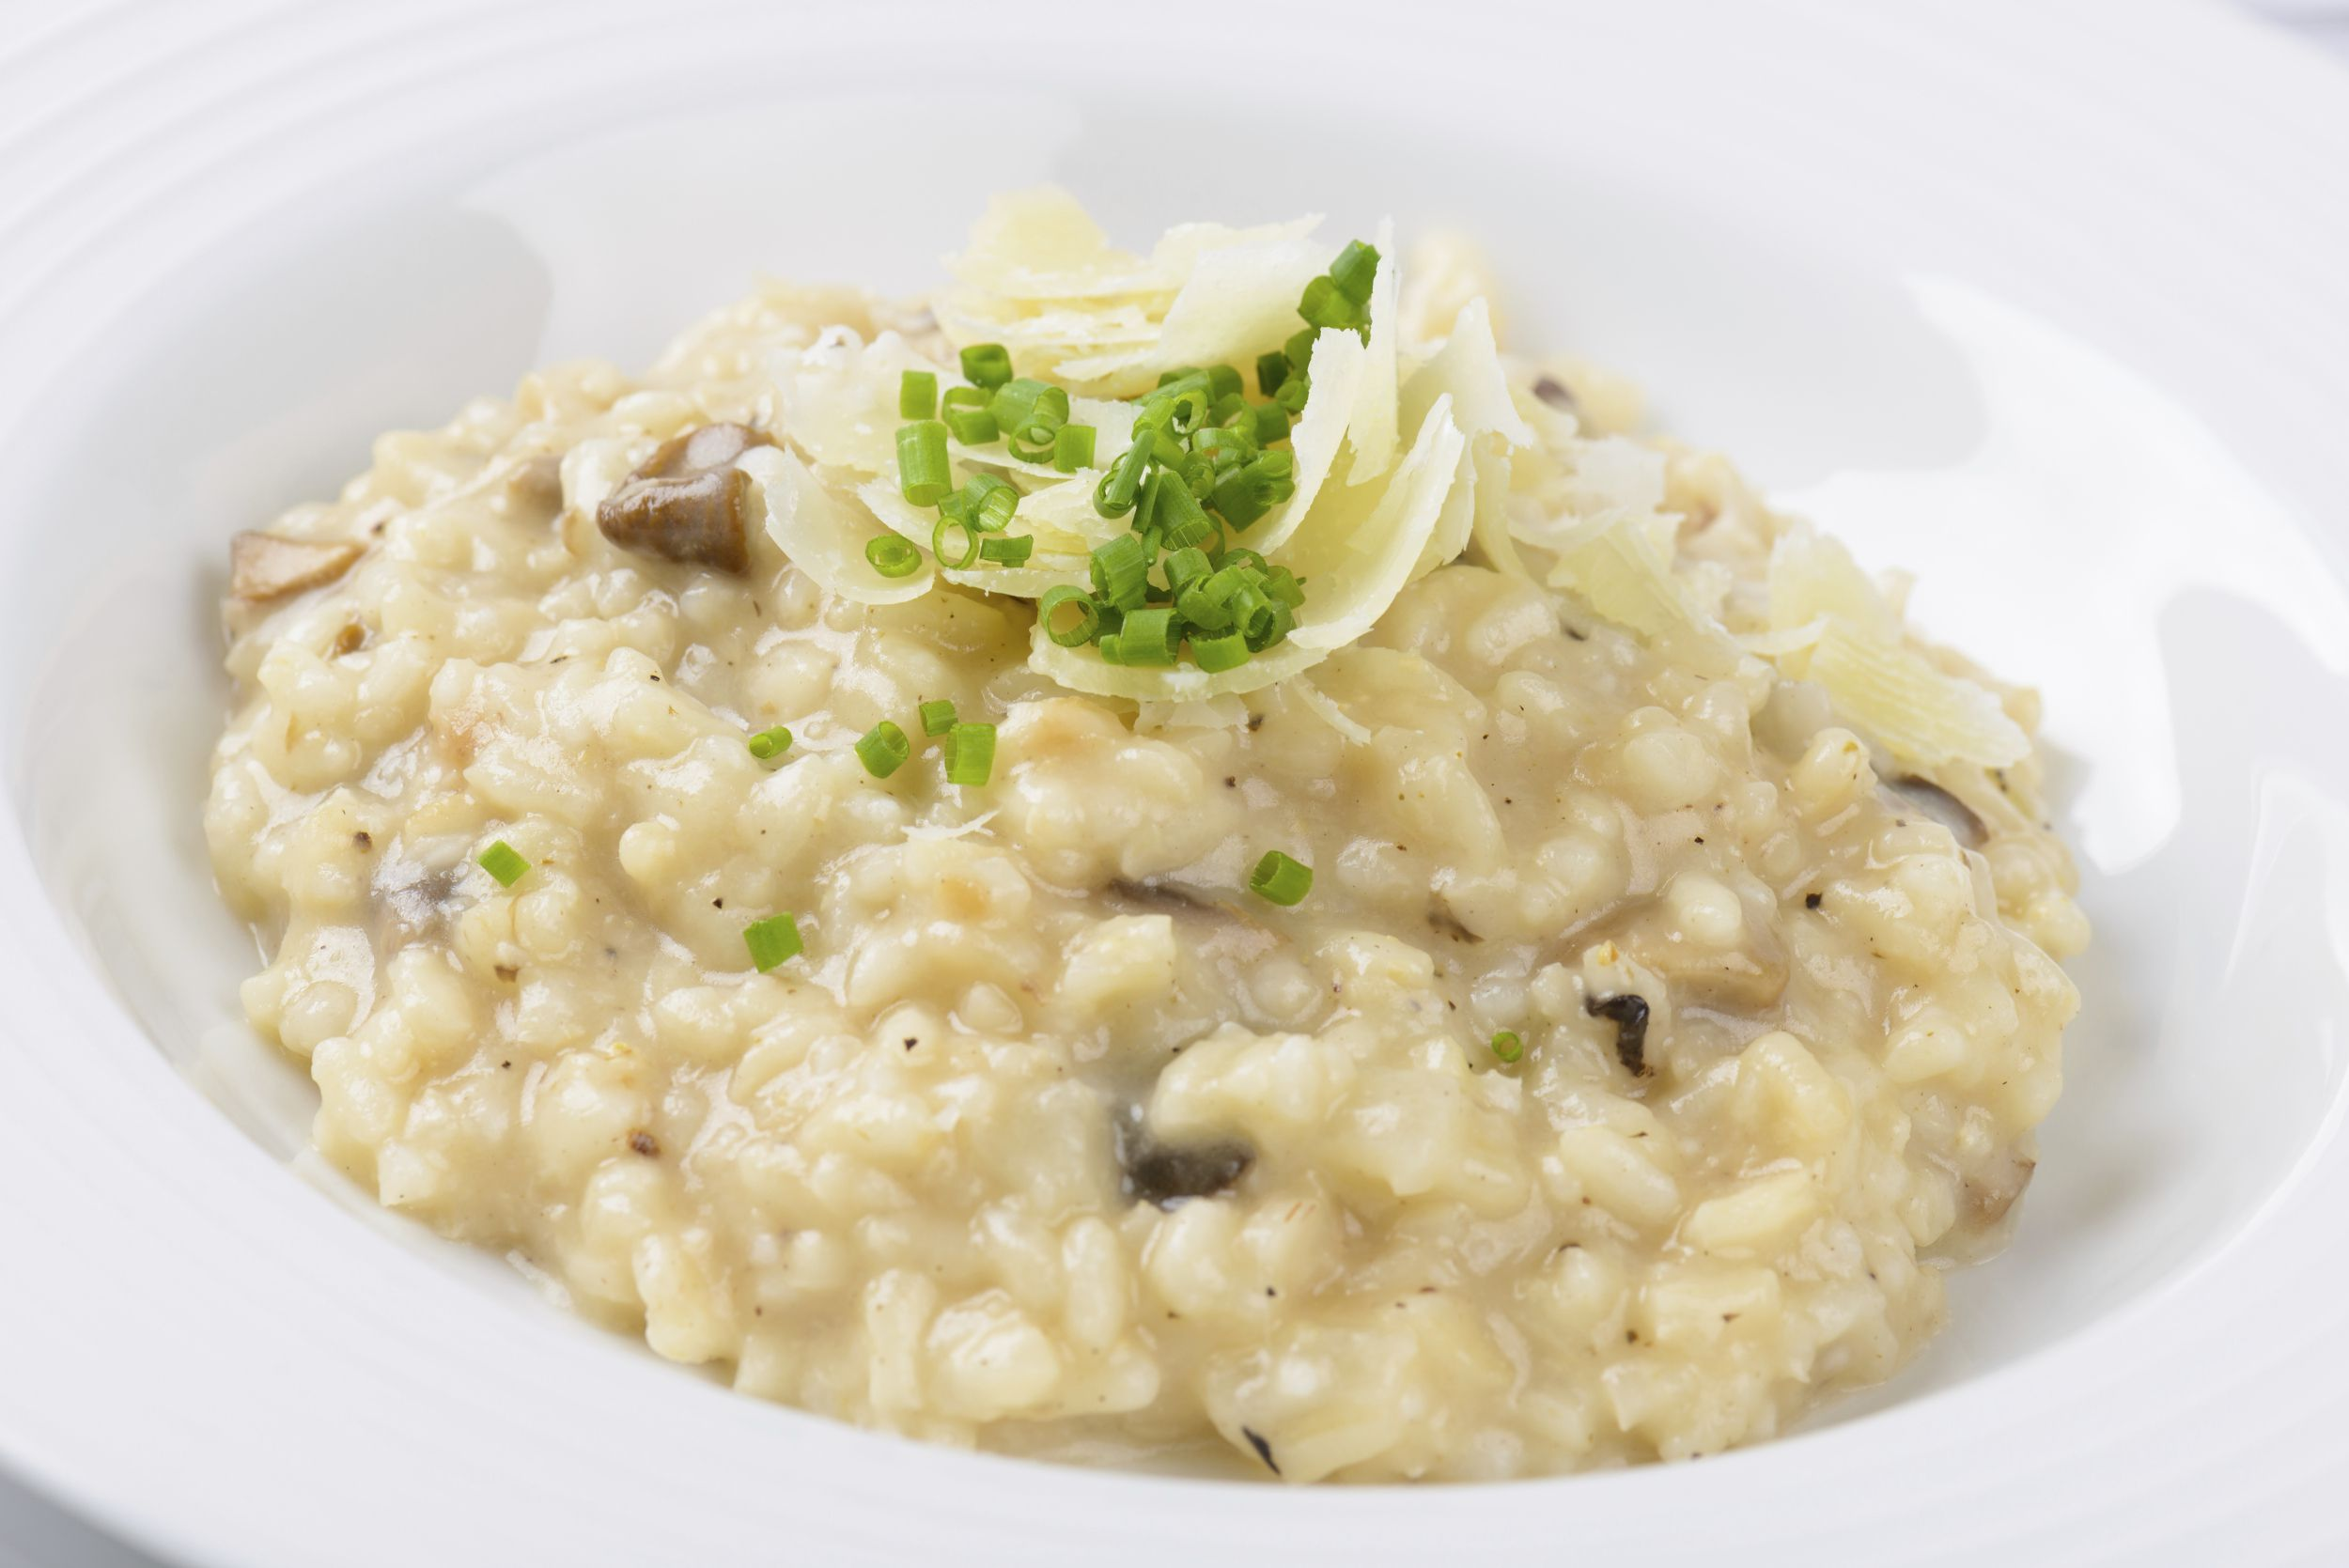 How To Make Risotto Step By Step Tutorial With Photos